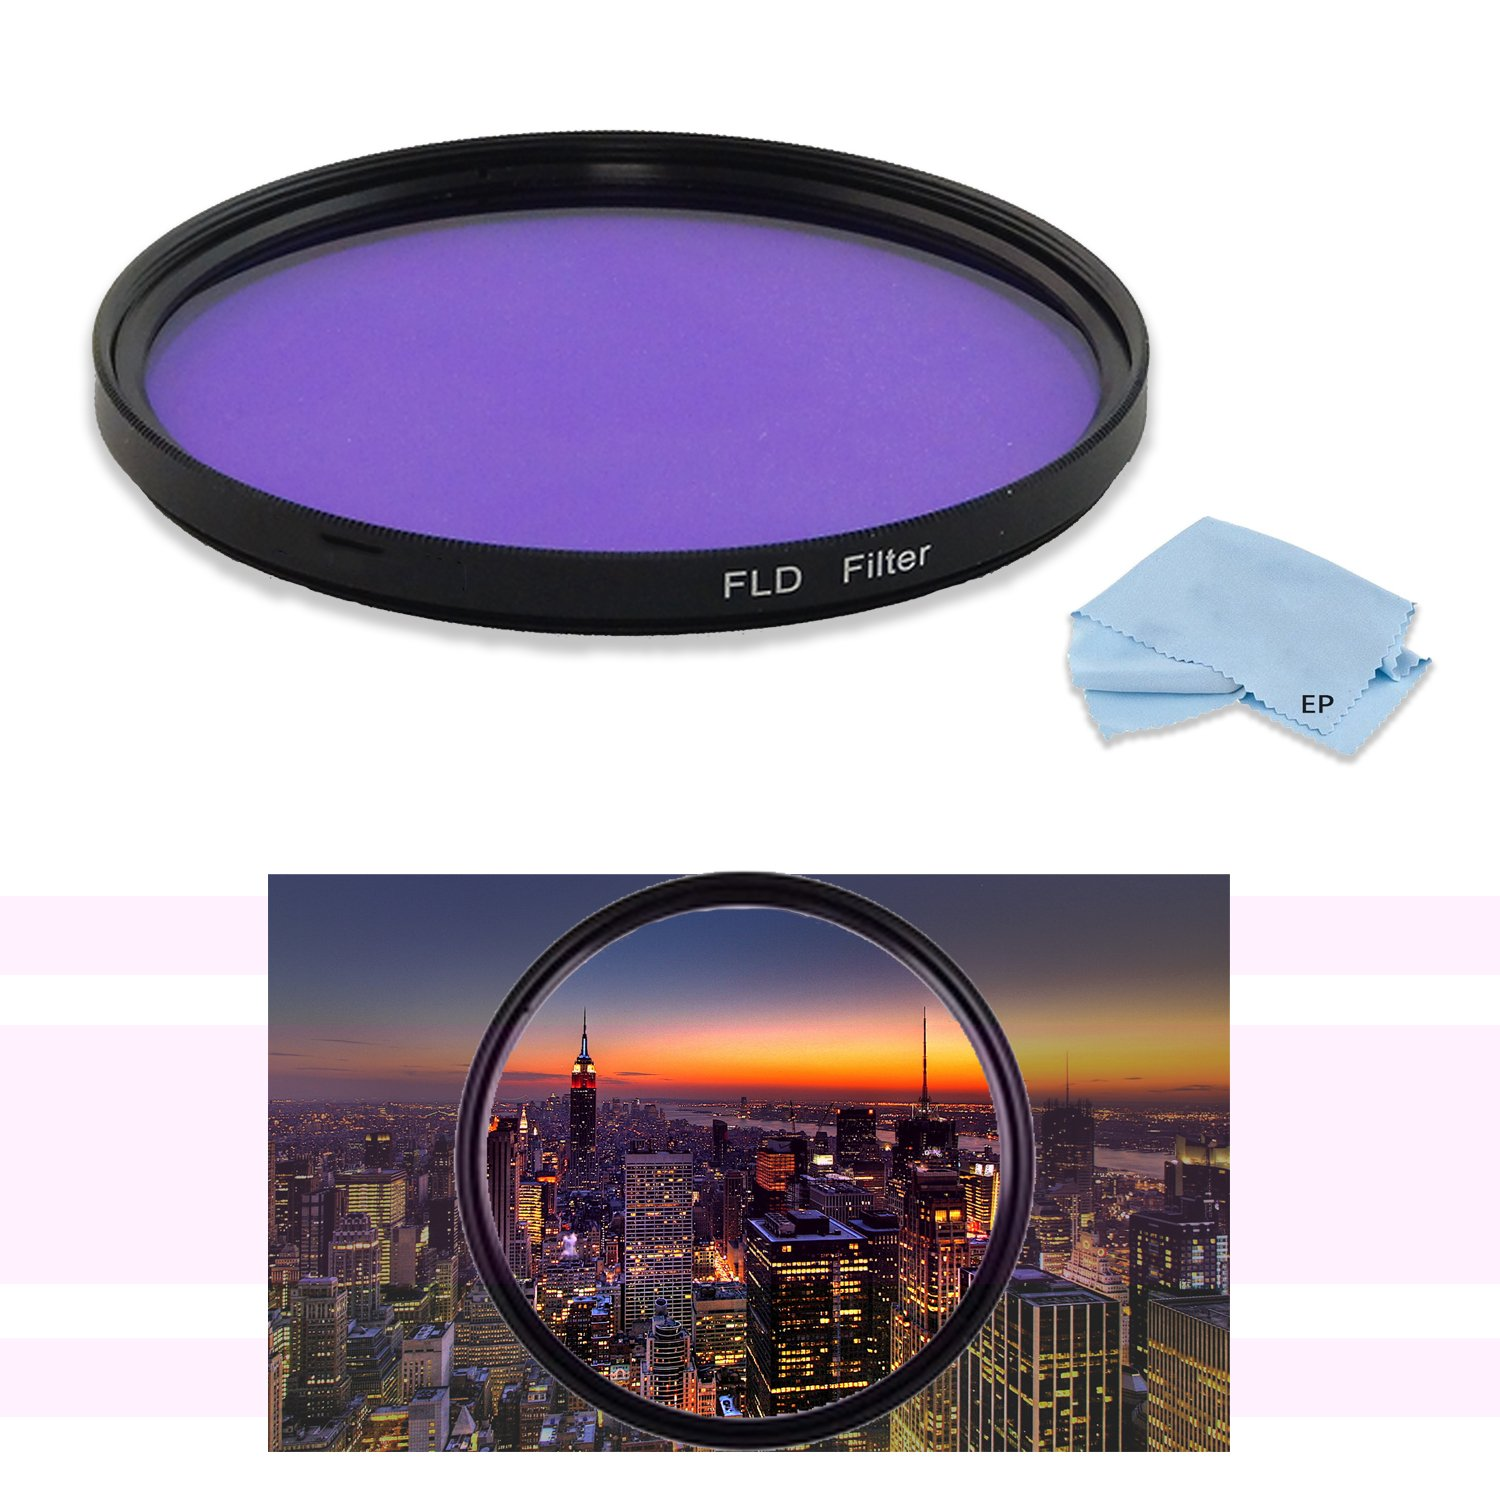 High Definition 49 mm FLD蛍光灯ライトフィルタfor Sony sel30 m35 30 mm f/3.5 e-mountマクロレンズ、Sony sel35 F18 35 mm f/1.8 Primeレンズ& Sony sel50 F18 /B 50 mm f/1.8レンズ   B07DR67HRT